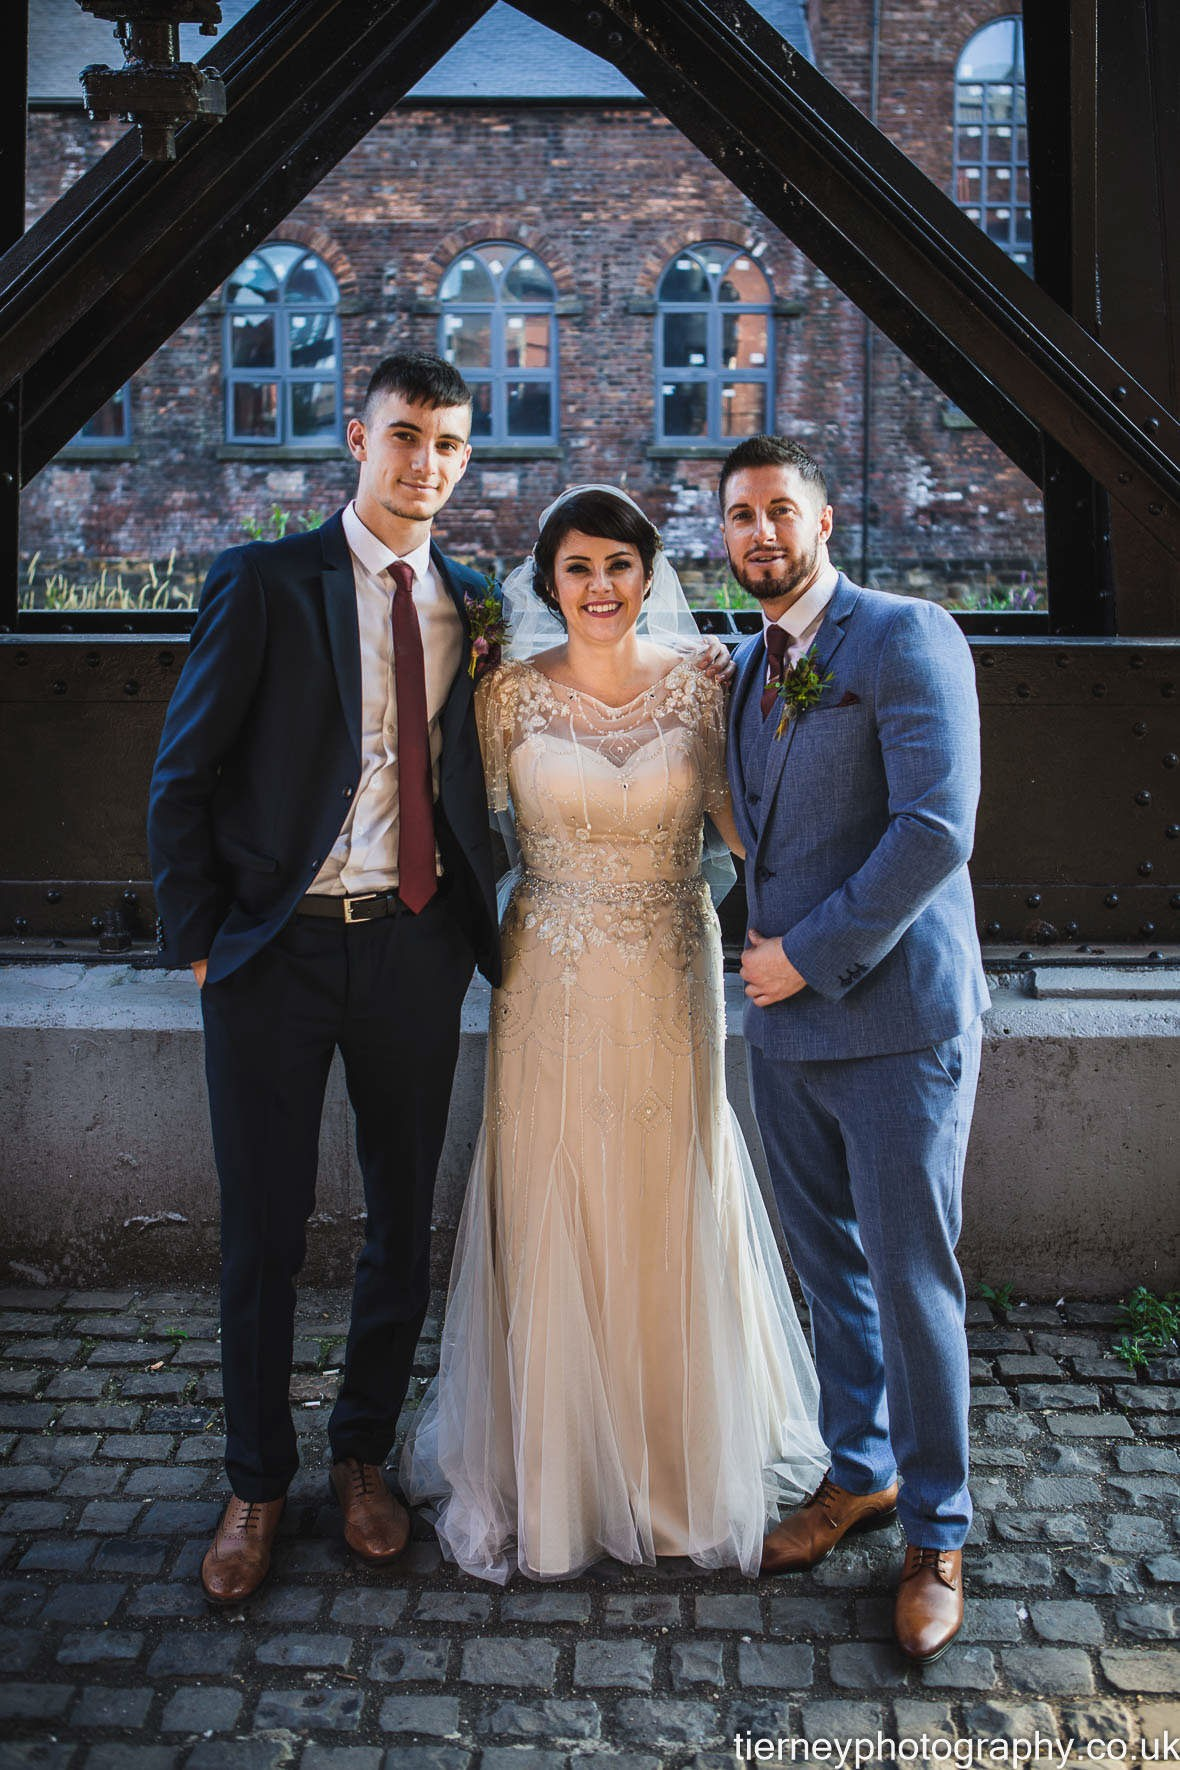 685-wedding-at-kelham-island-museum